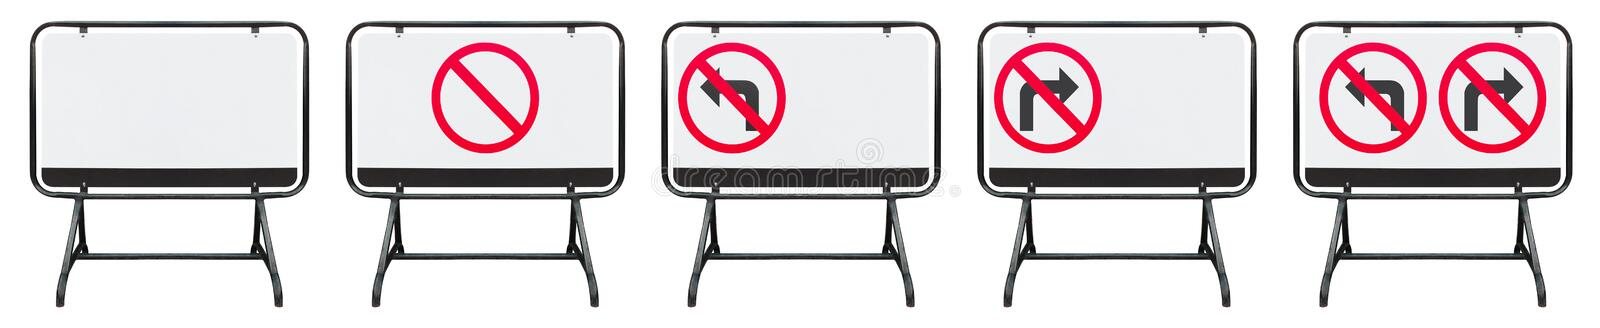 Steel barrier or traffic fence symbol isolated on white background with clipping path. Traffic barrier made of black iron. No left stock image